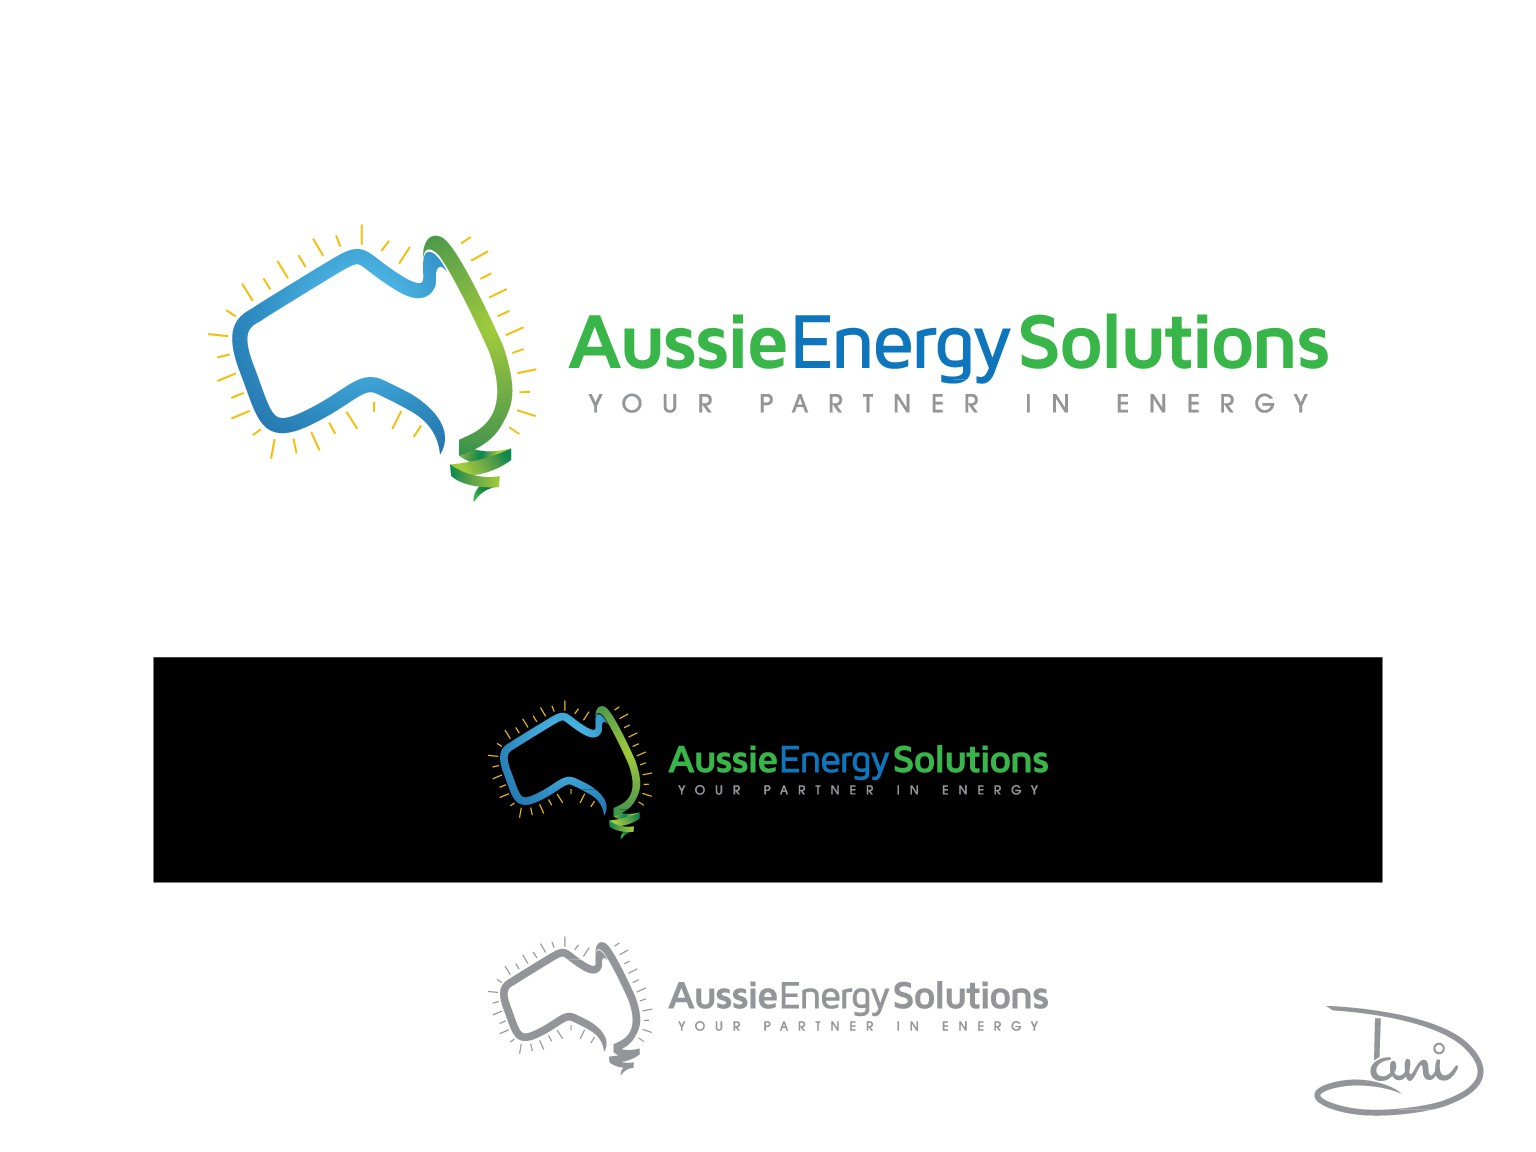 New logo wanted for Aussie Energy Solutions